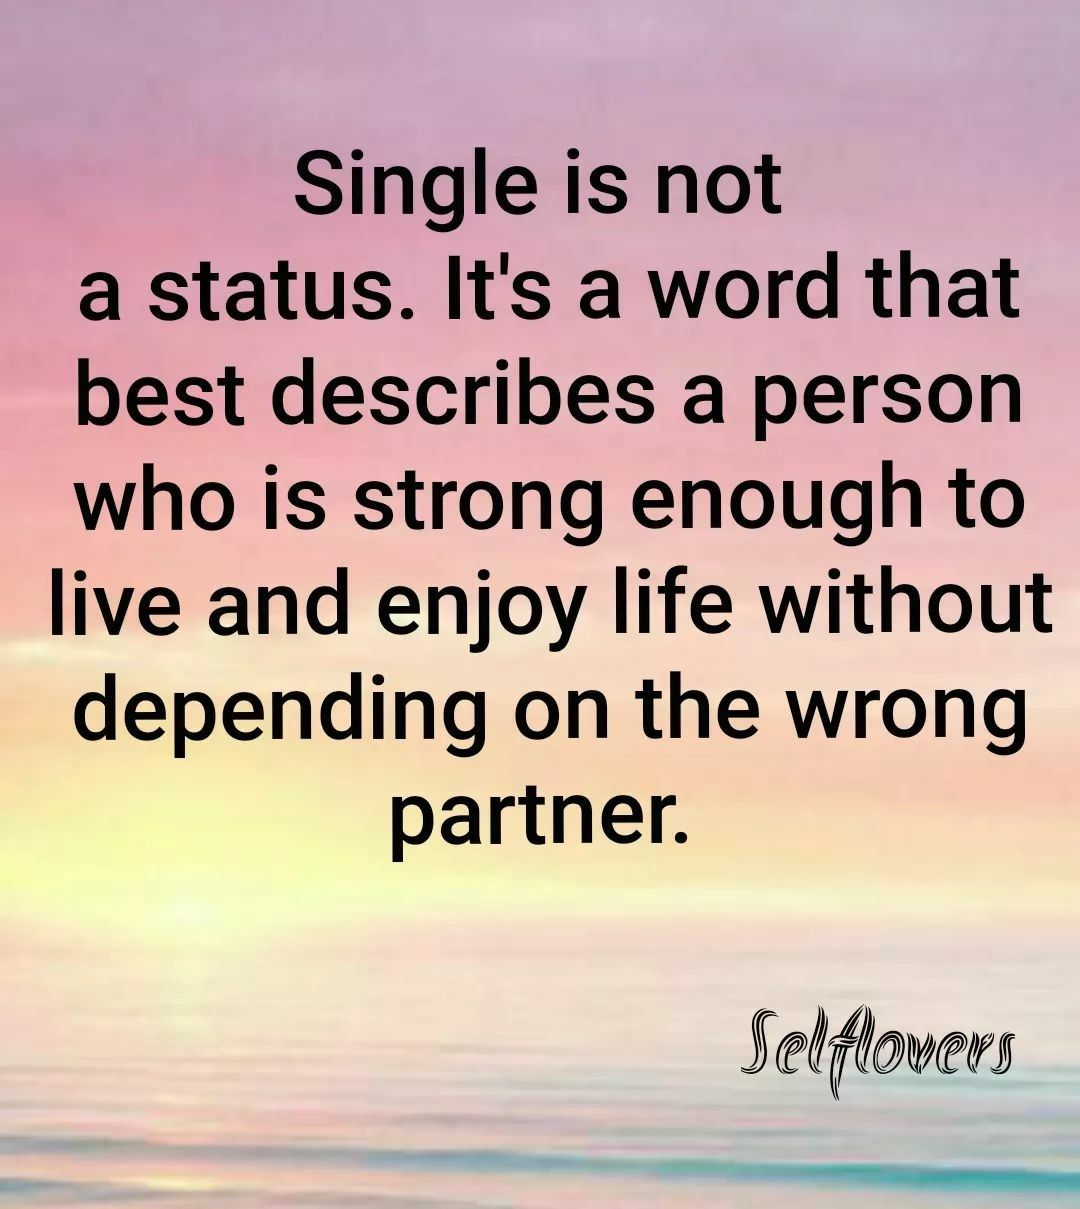 Wrong partner | Us | Real life quotes, Breakup quotes, Life